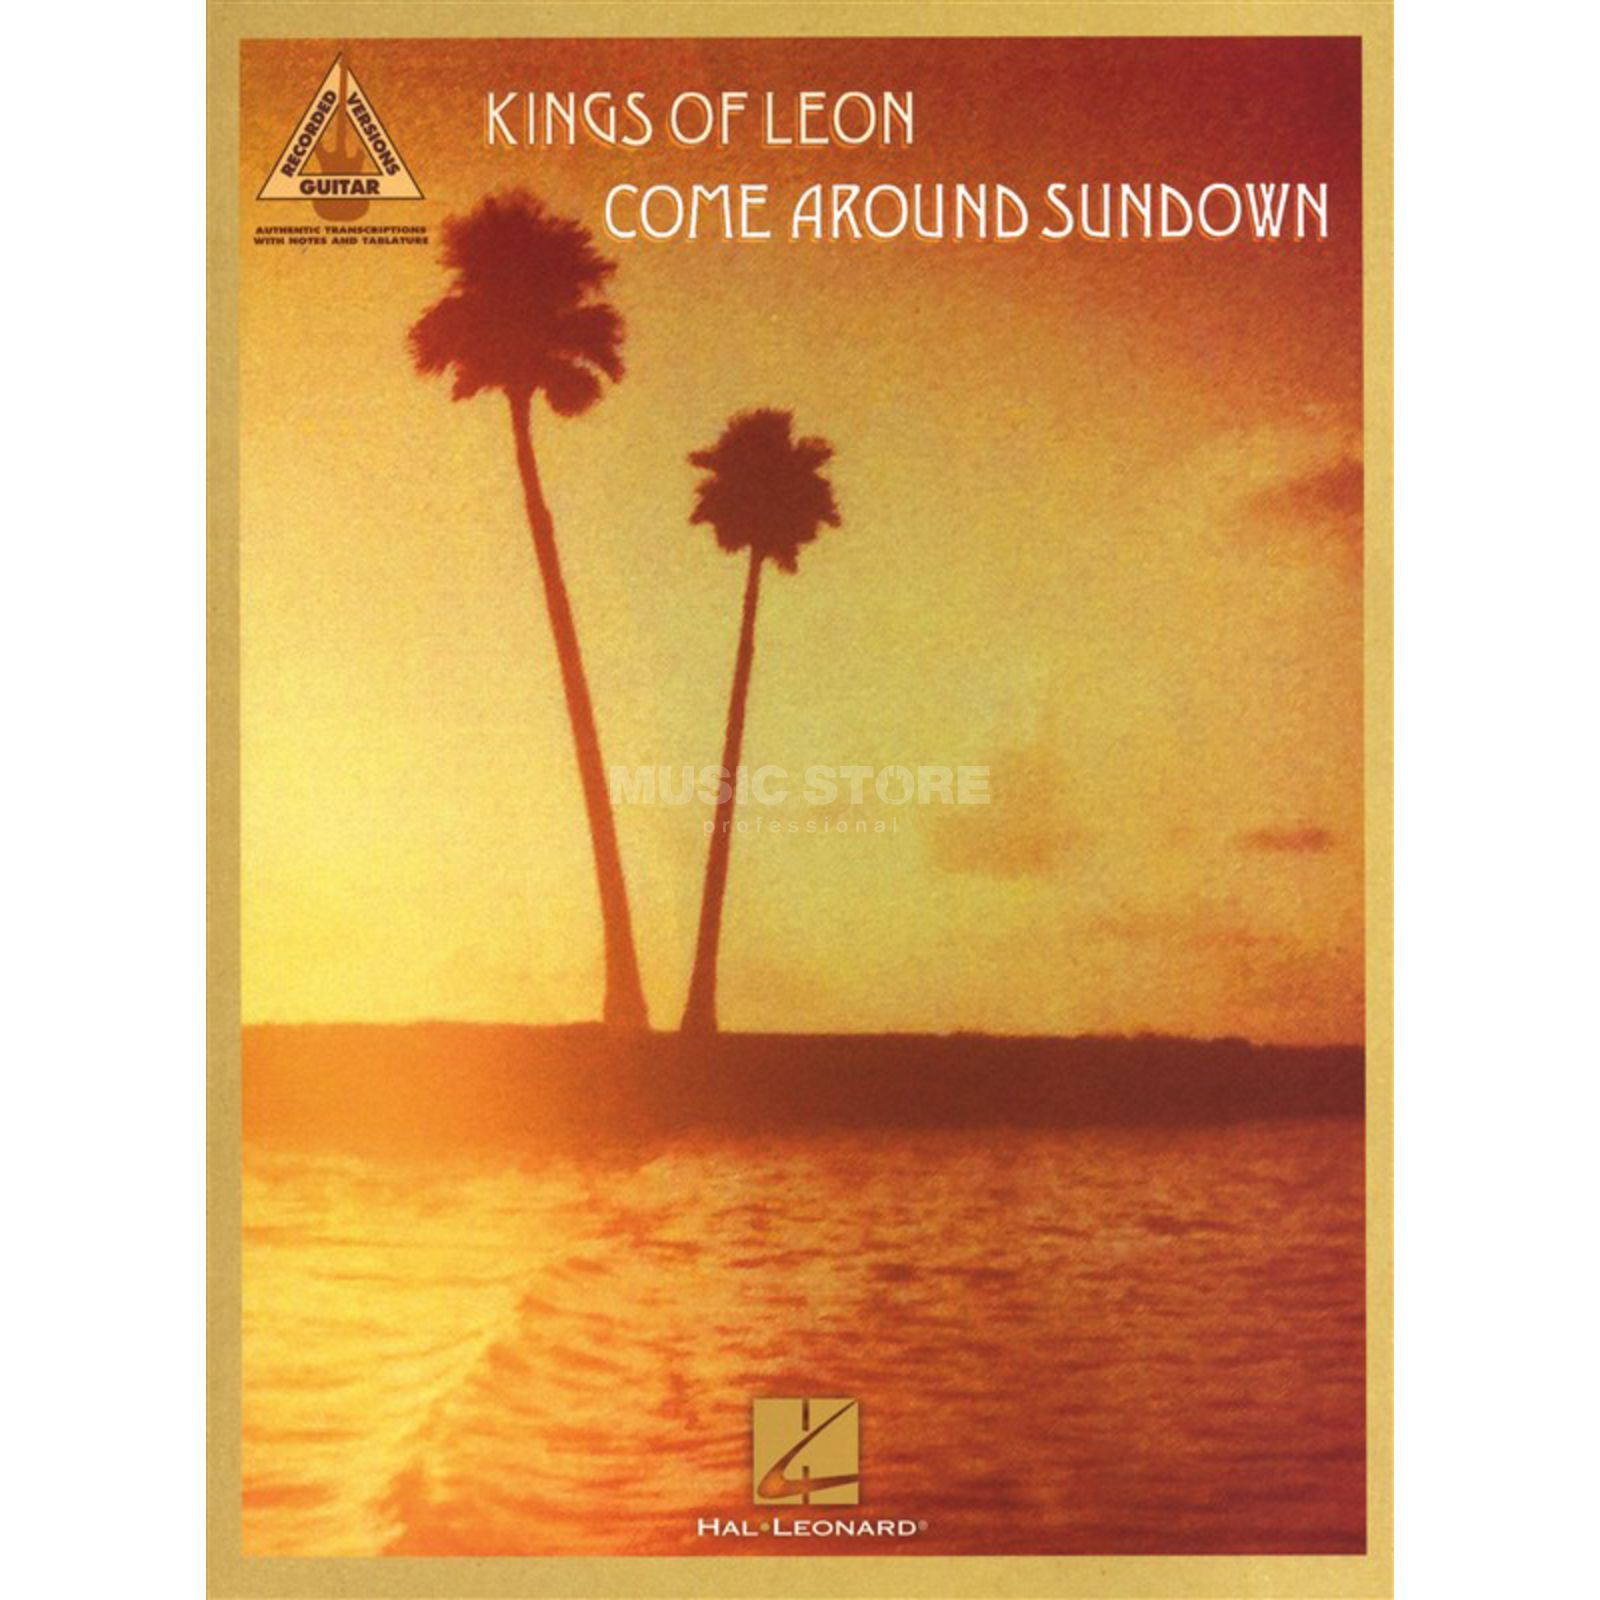 Hal Leonard Kings Of Leon: Come Around Sundown Produktbild